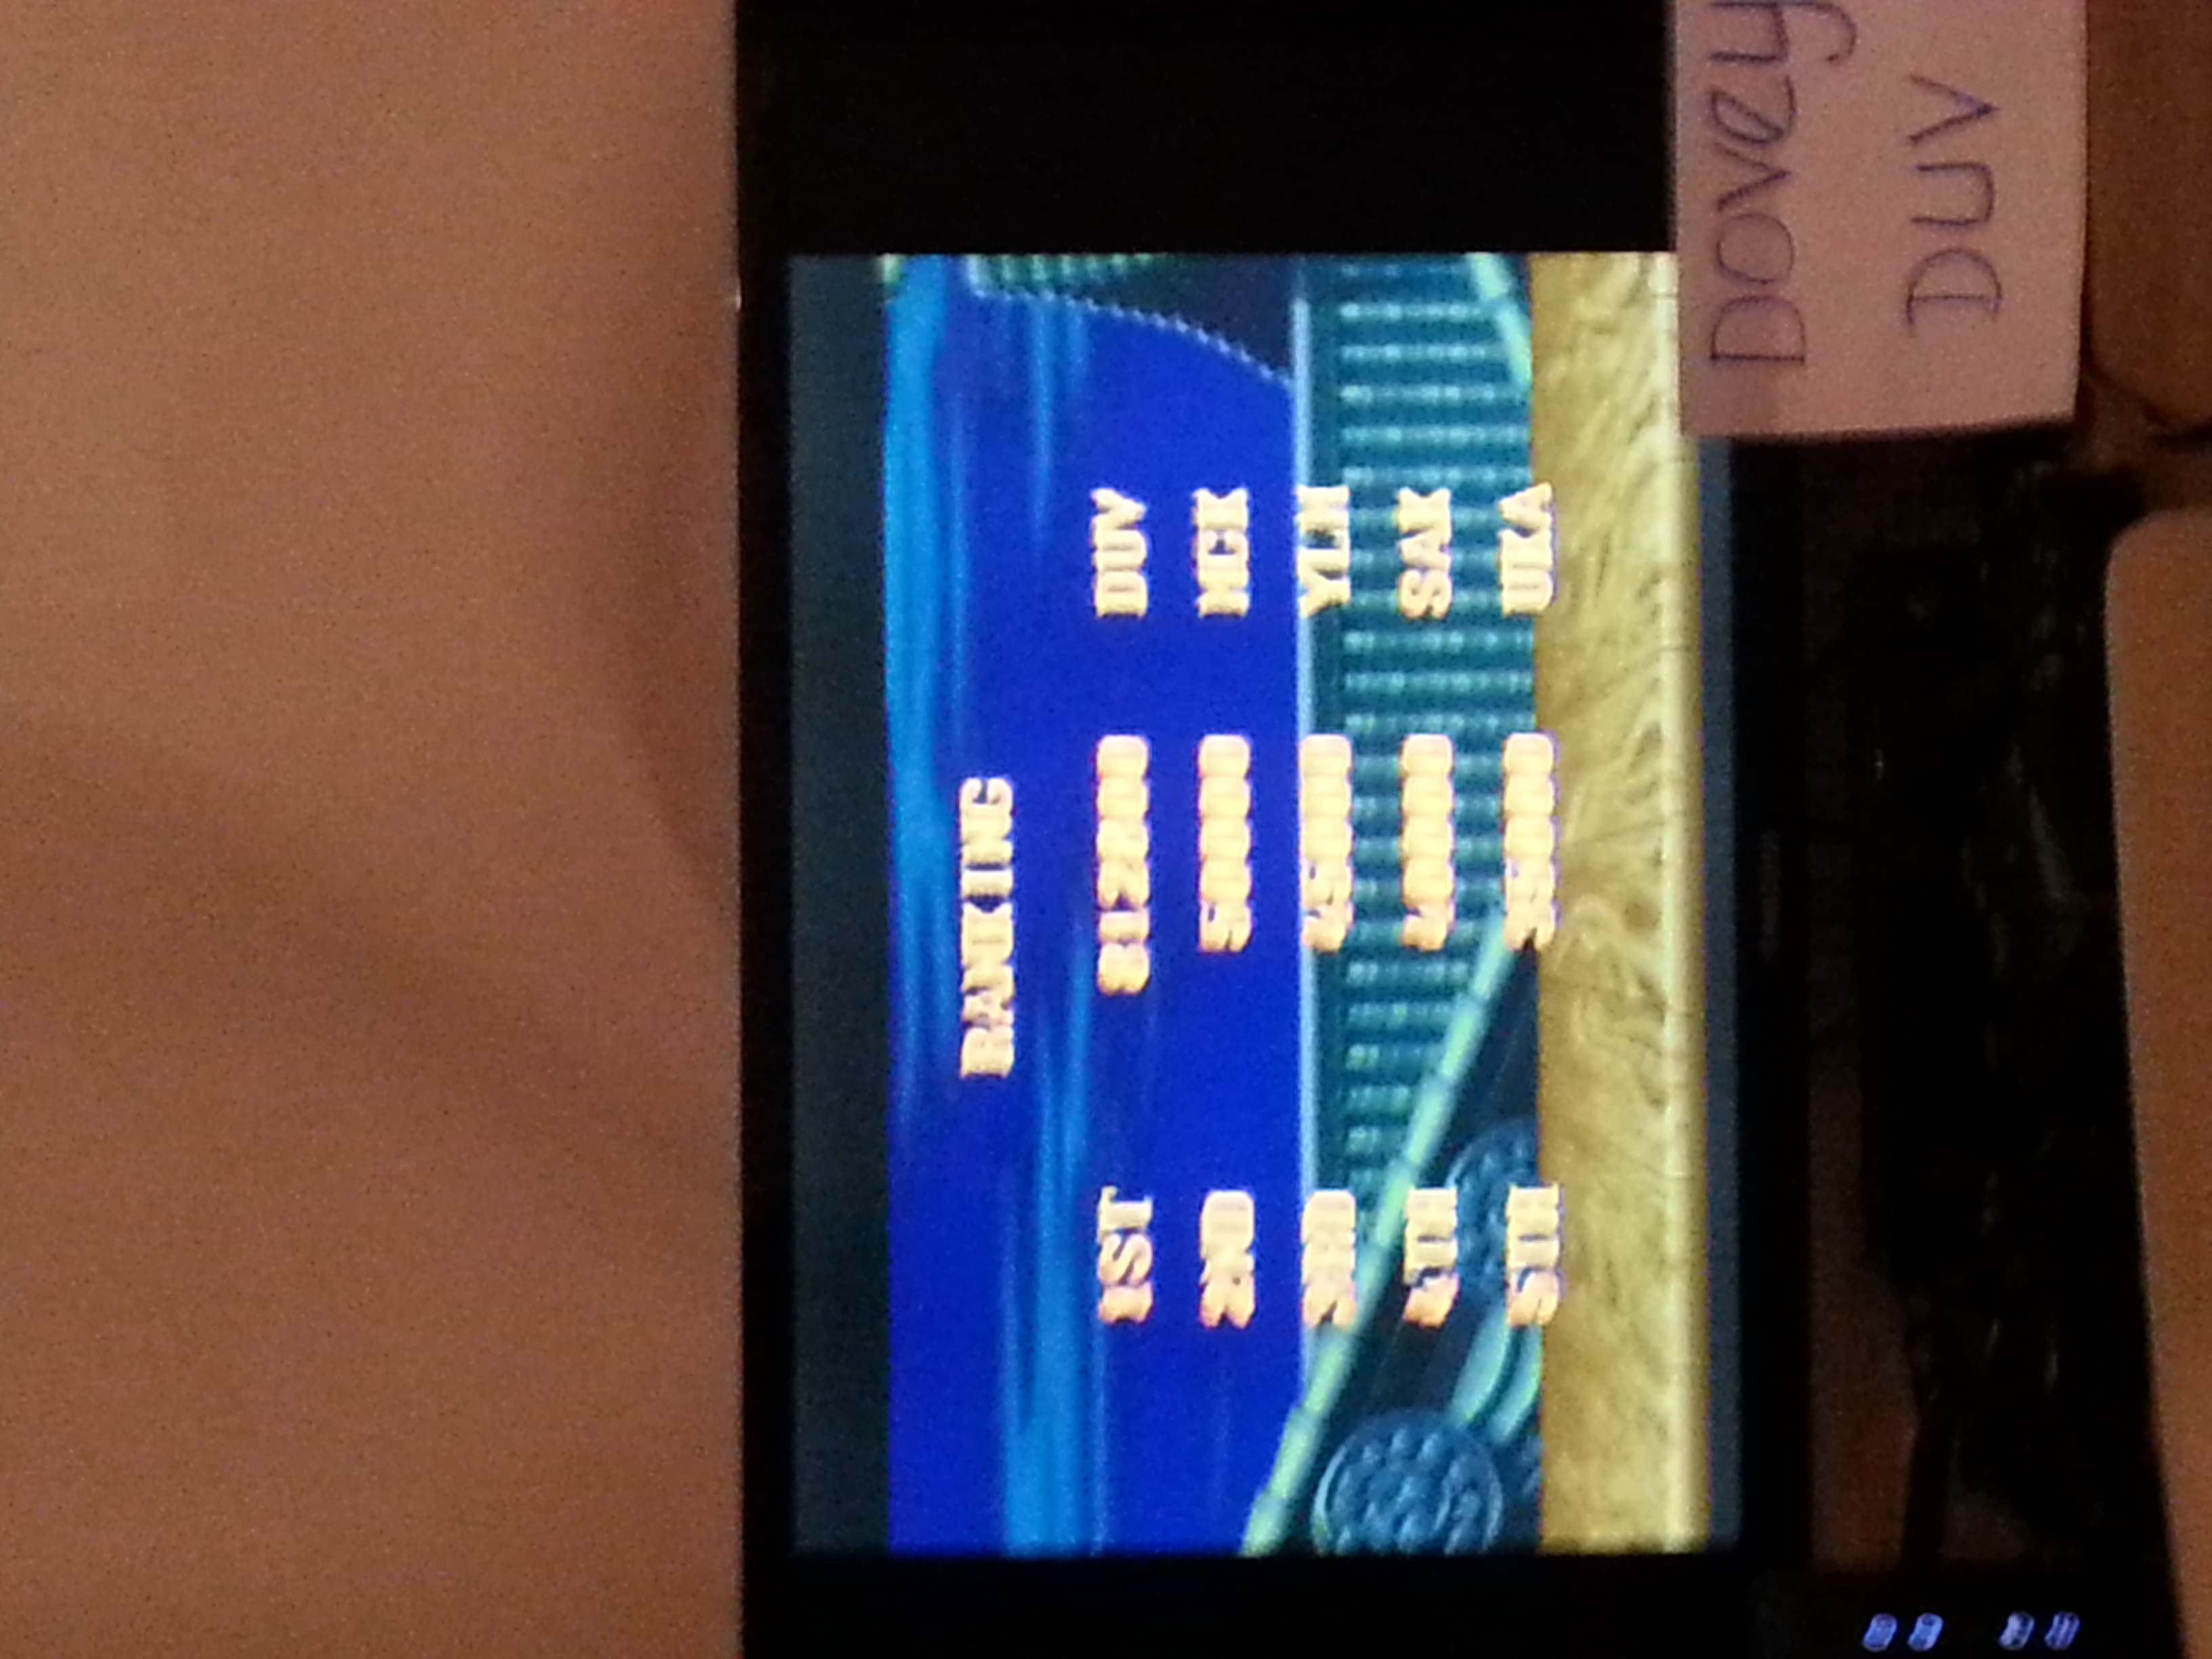 Street Fighter 2 Turbo: Hyper Fighting: Normal 812,100 points